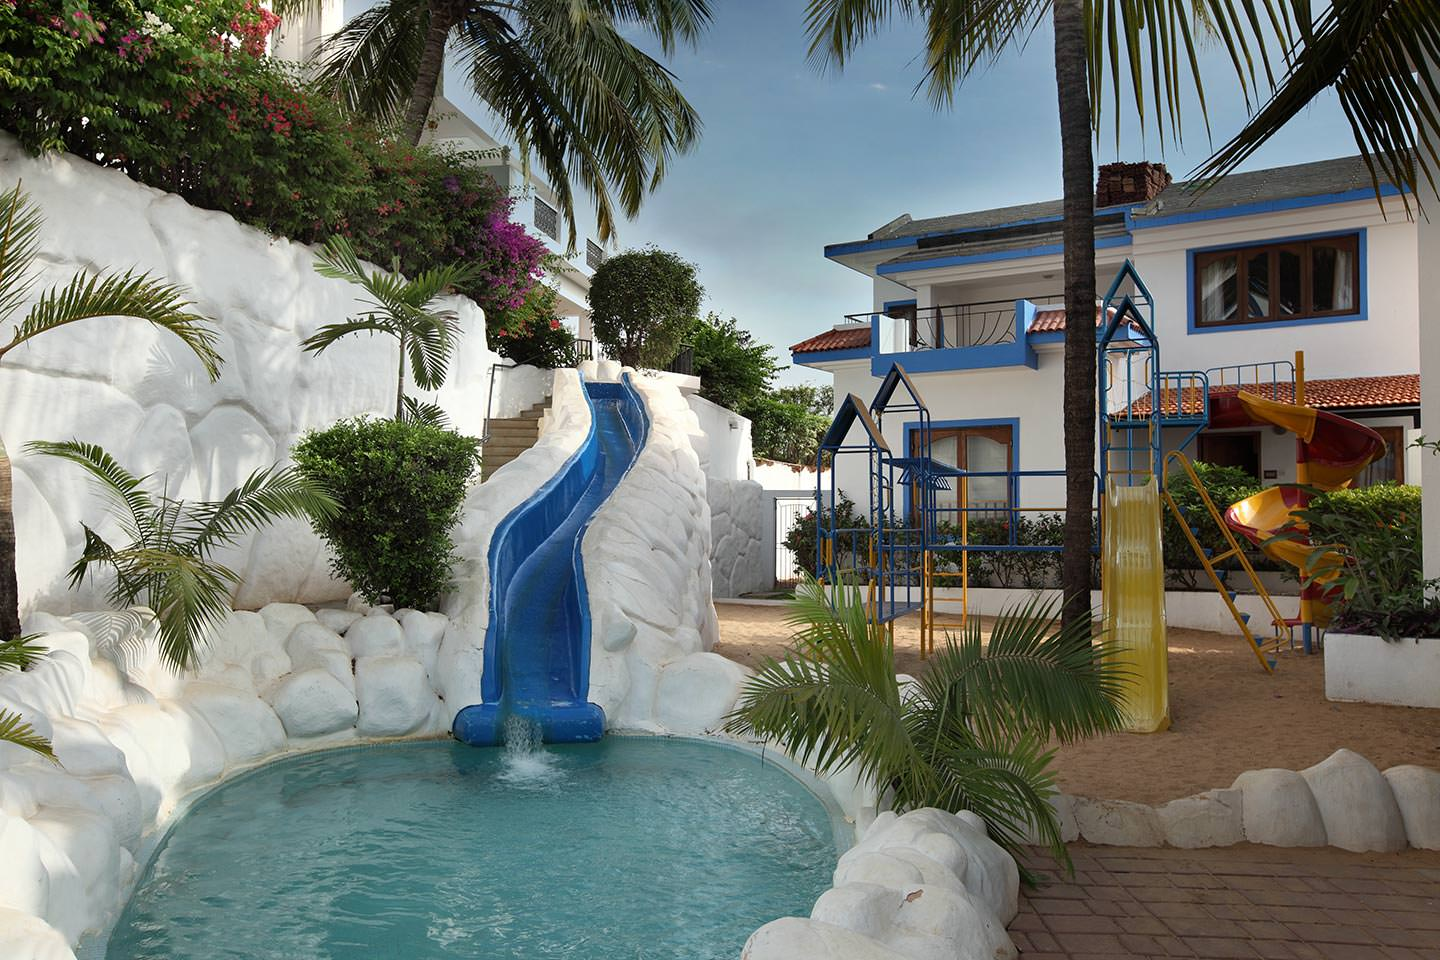 luxury hotel of Karma Royal Haathi Mahal Childrens Slide